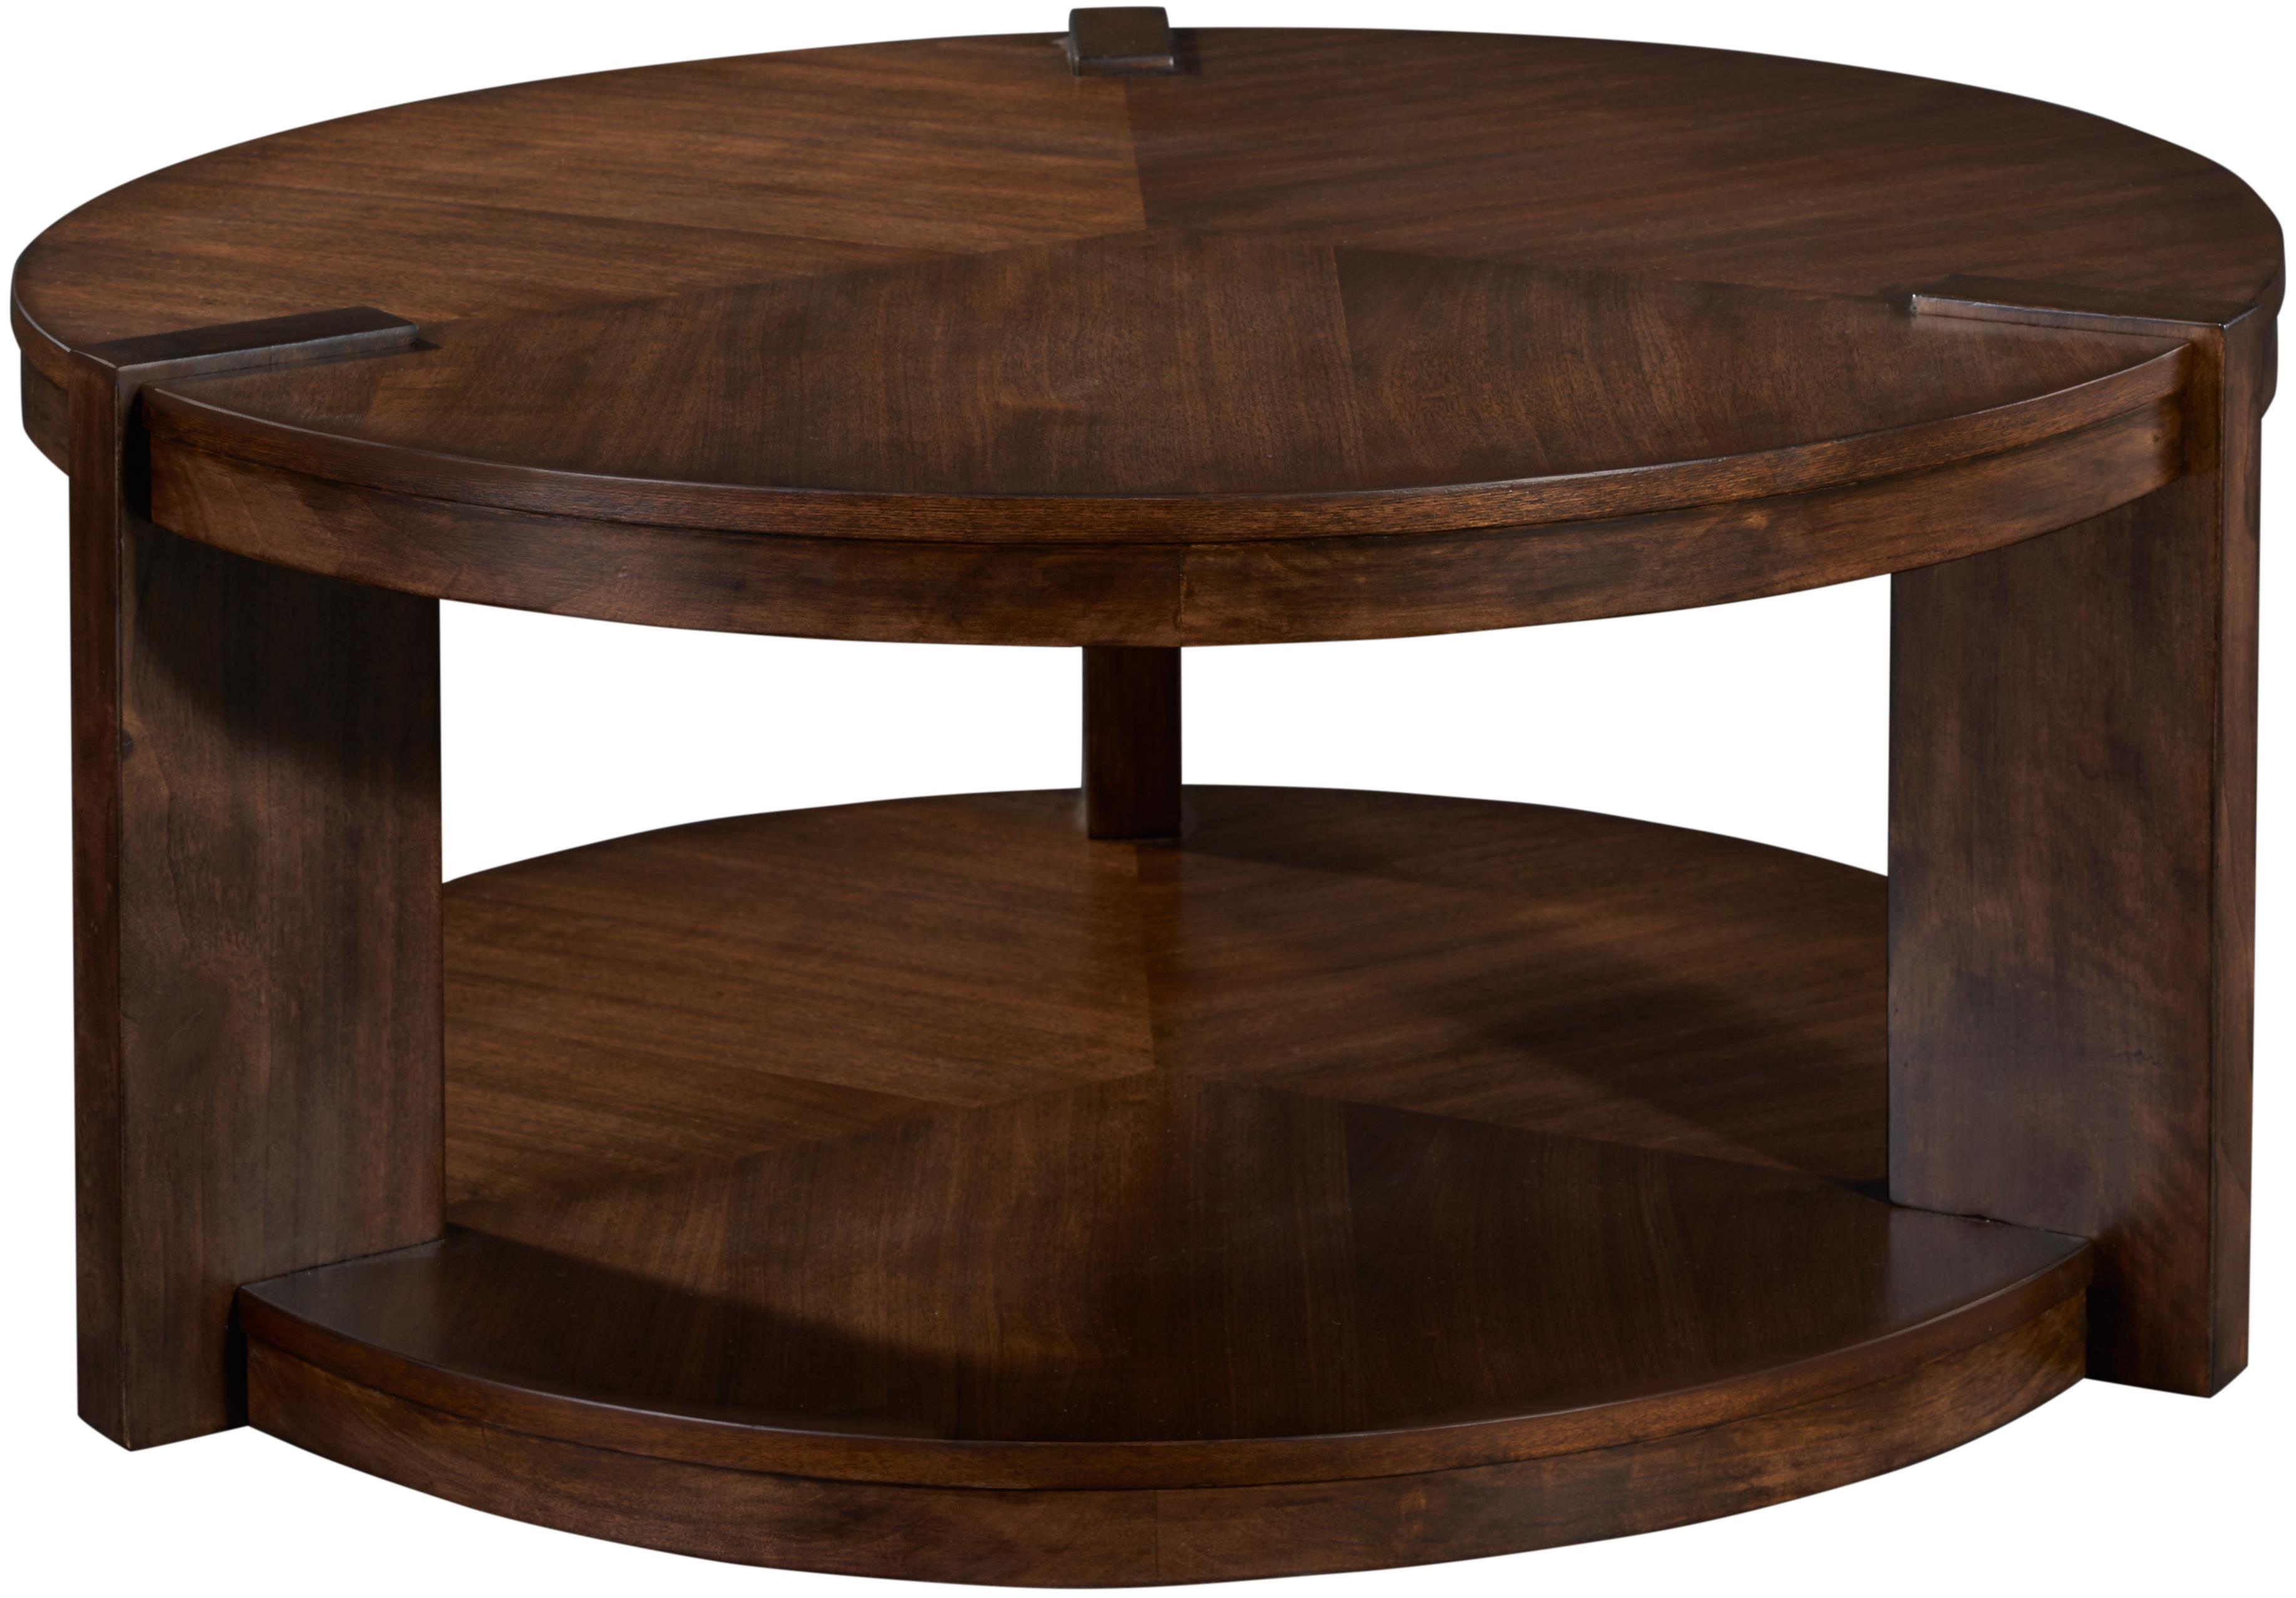 Broyhill Furniture Ryleigh Round Rotating Cocktail Table - Item Number: 3185-003